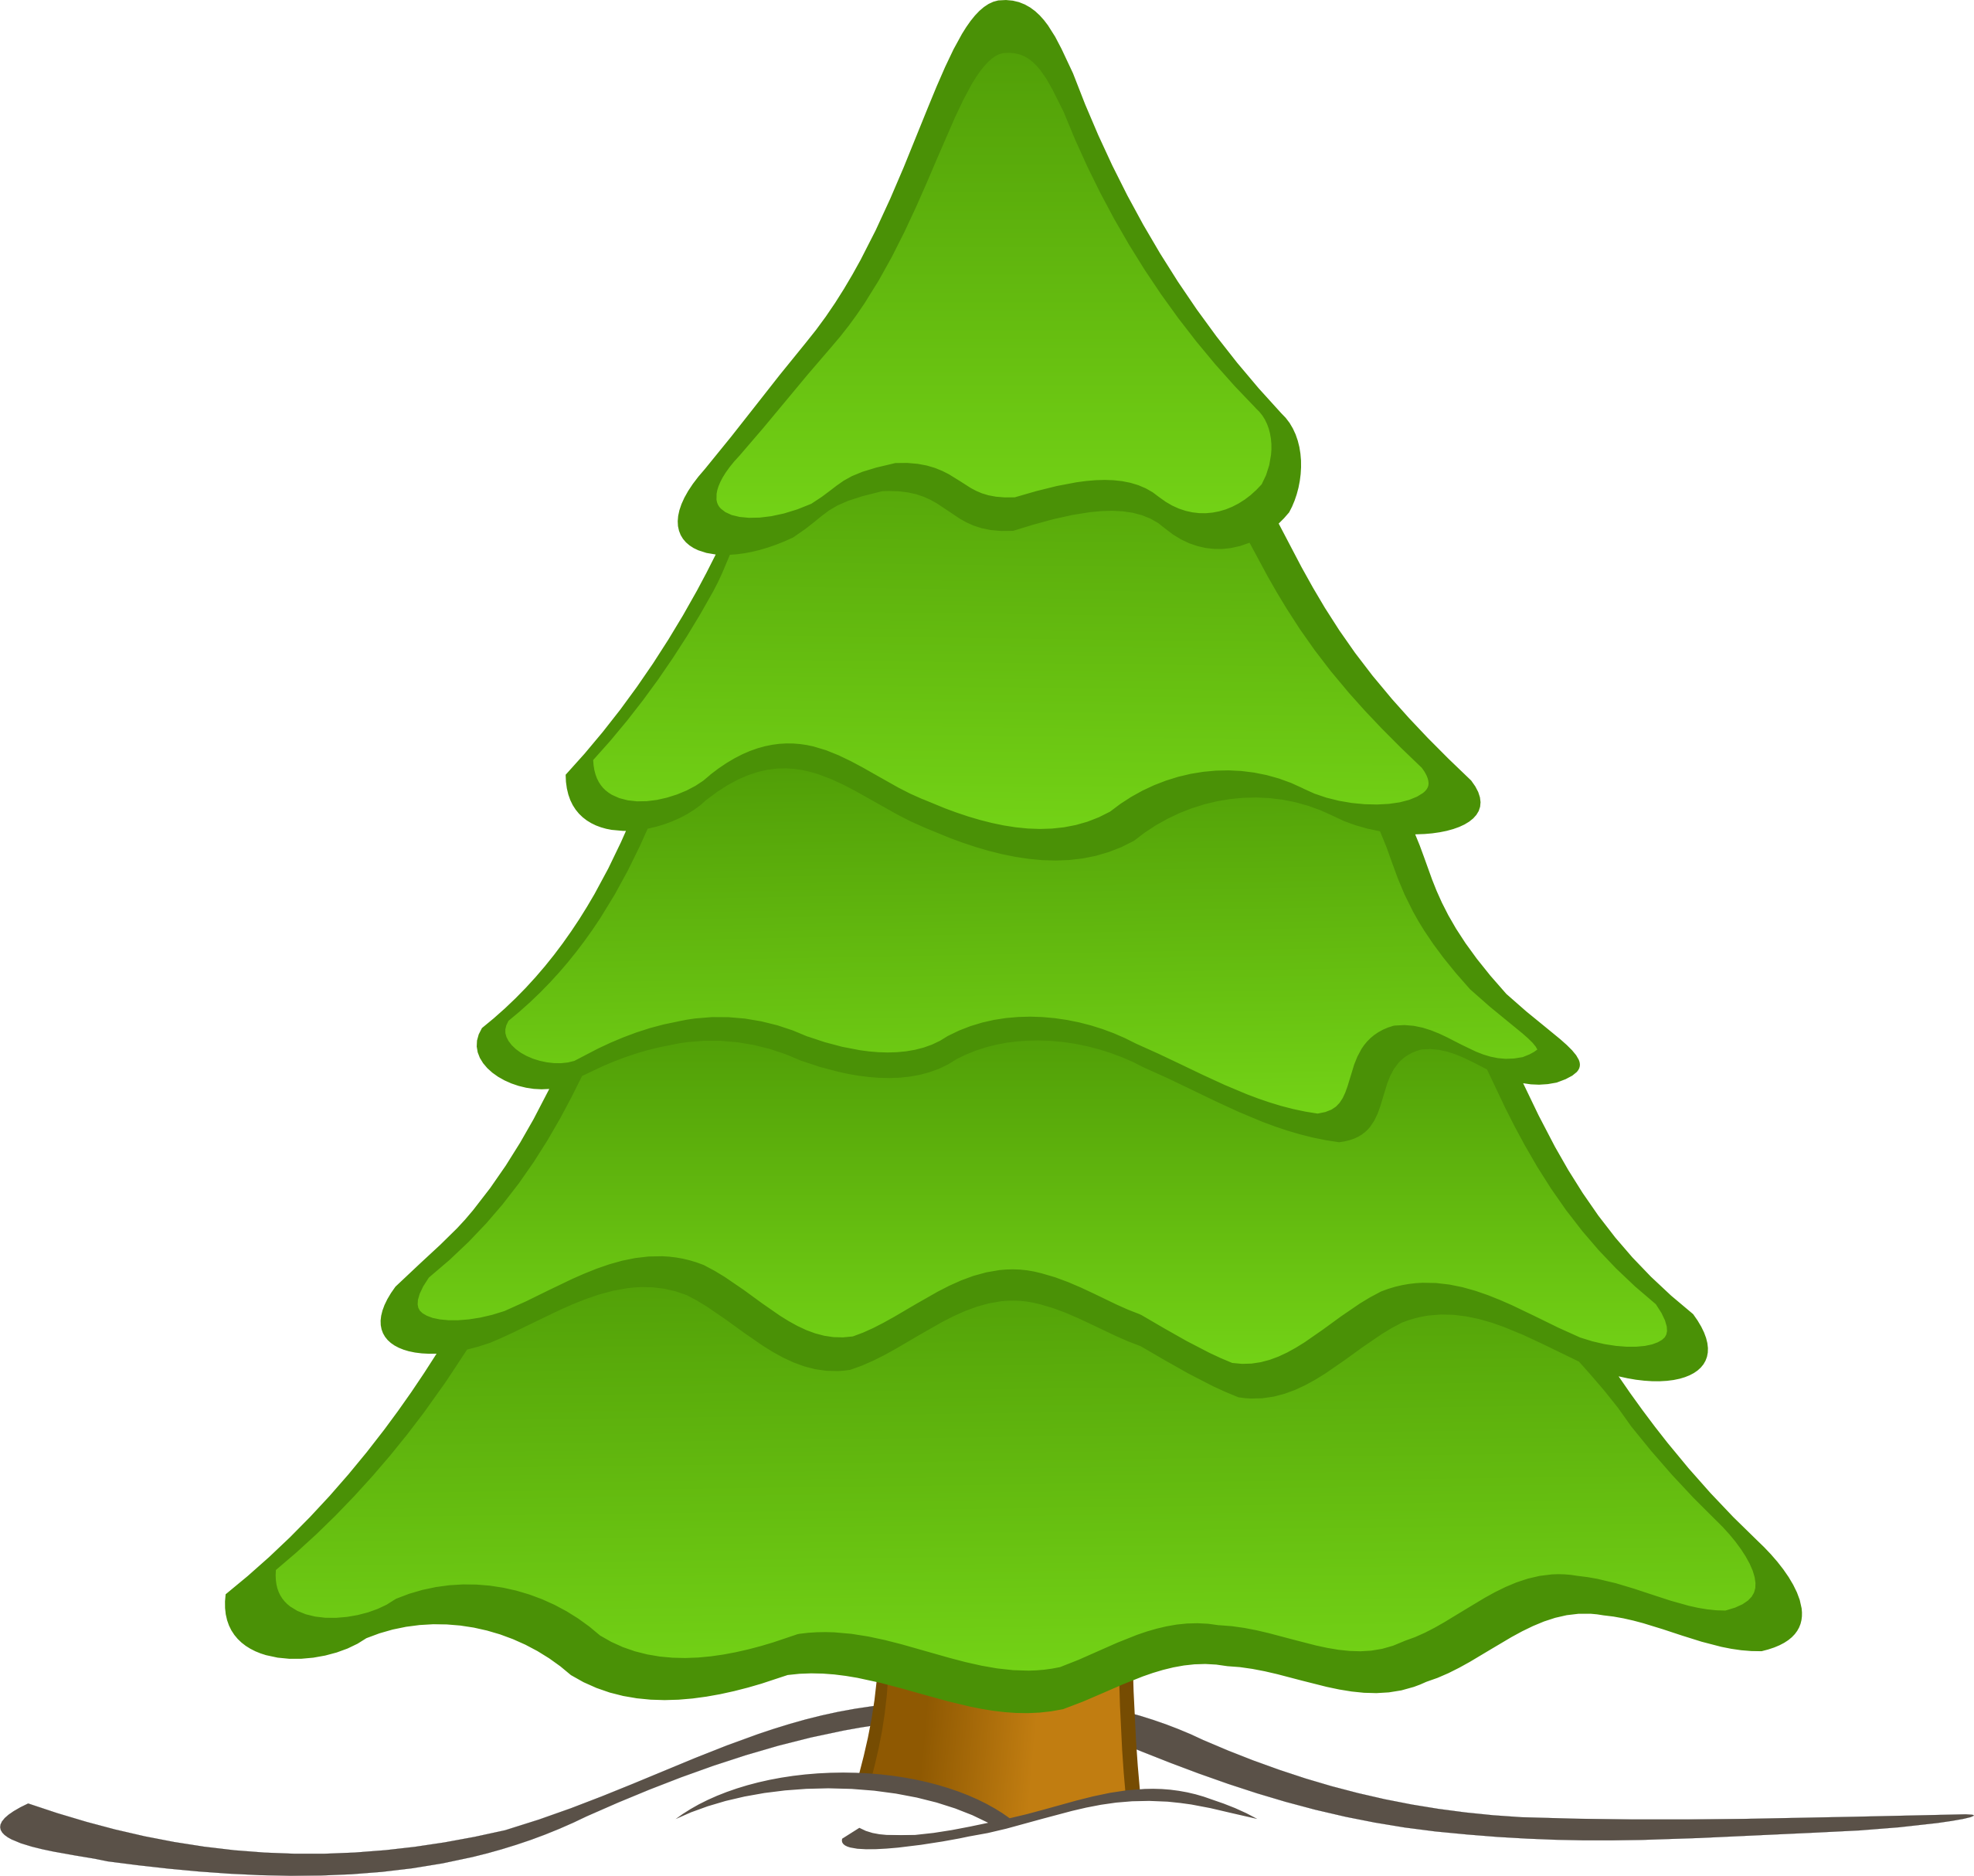 Free Grinch Clipart.